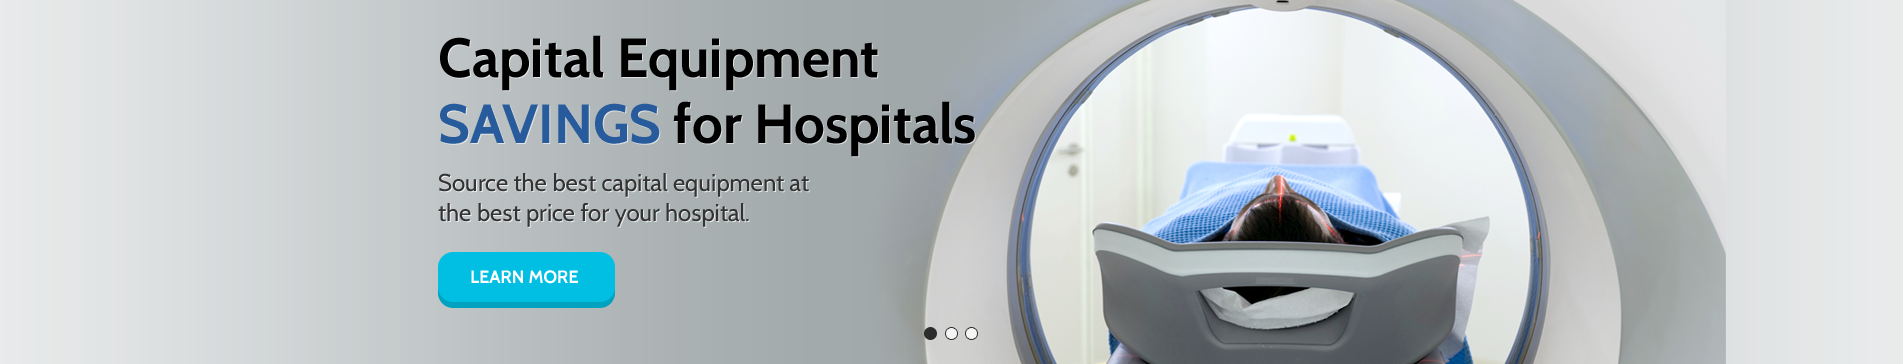 Capital Equipment Savings for Hospitals